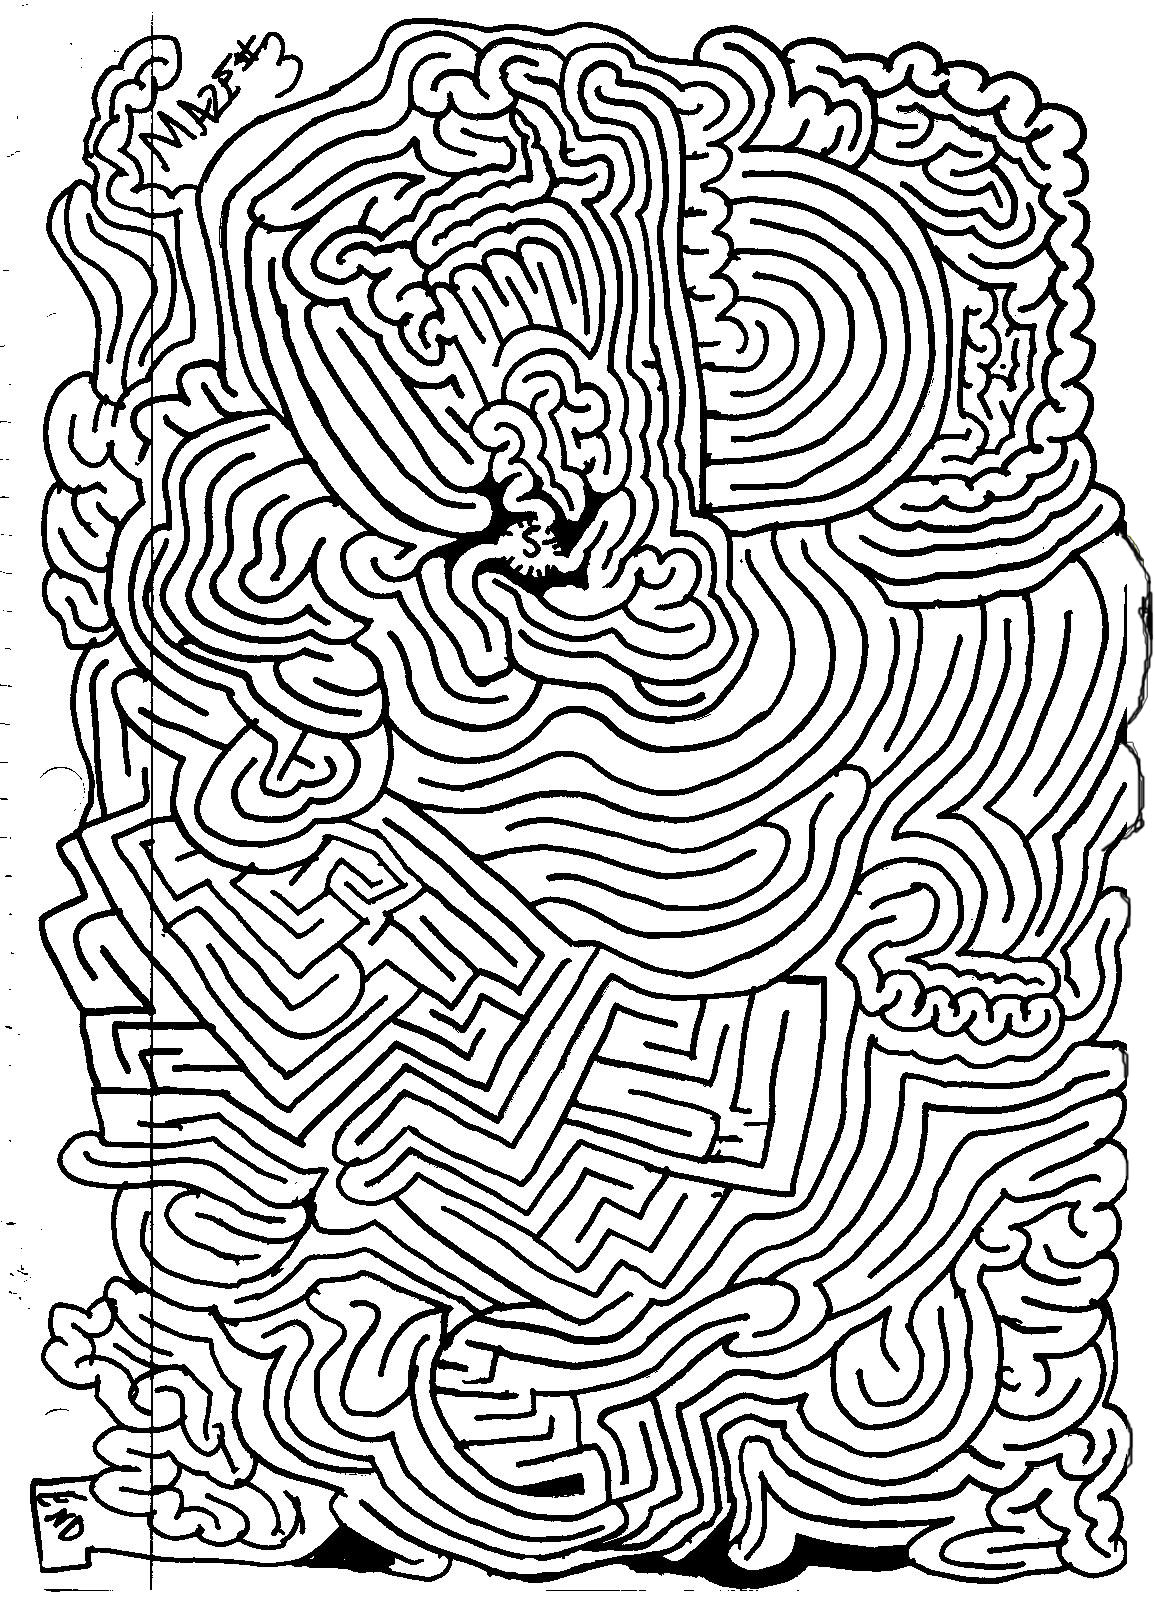 Food Coloring Page moreover Unhealthy Food Avoid For Kids Superbaby moreover X likewise Intricate Maze Coloring Pages likewise Kids Lunch Ideas. on healthy food coloring pages for kids